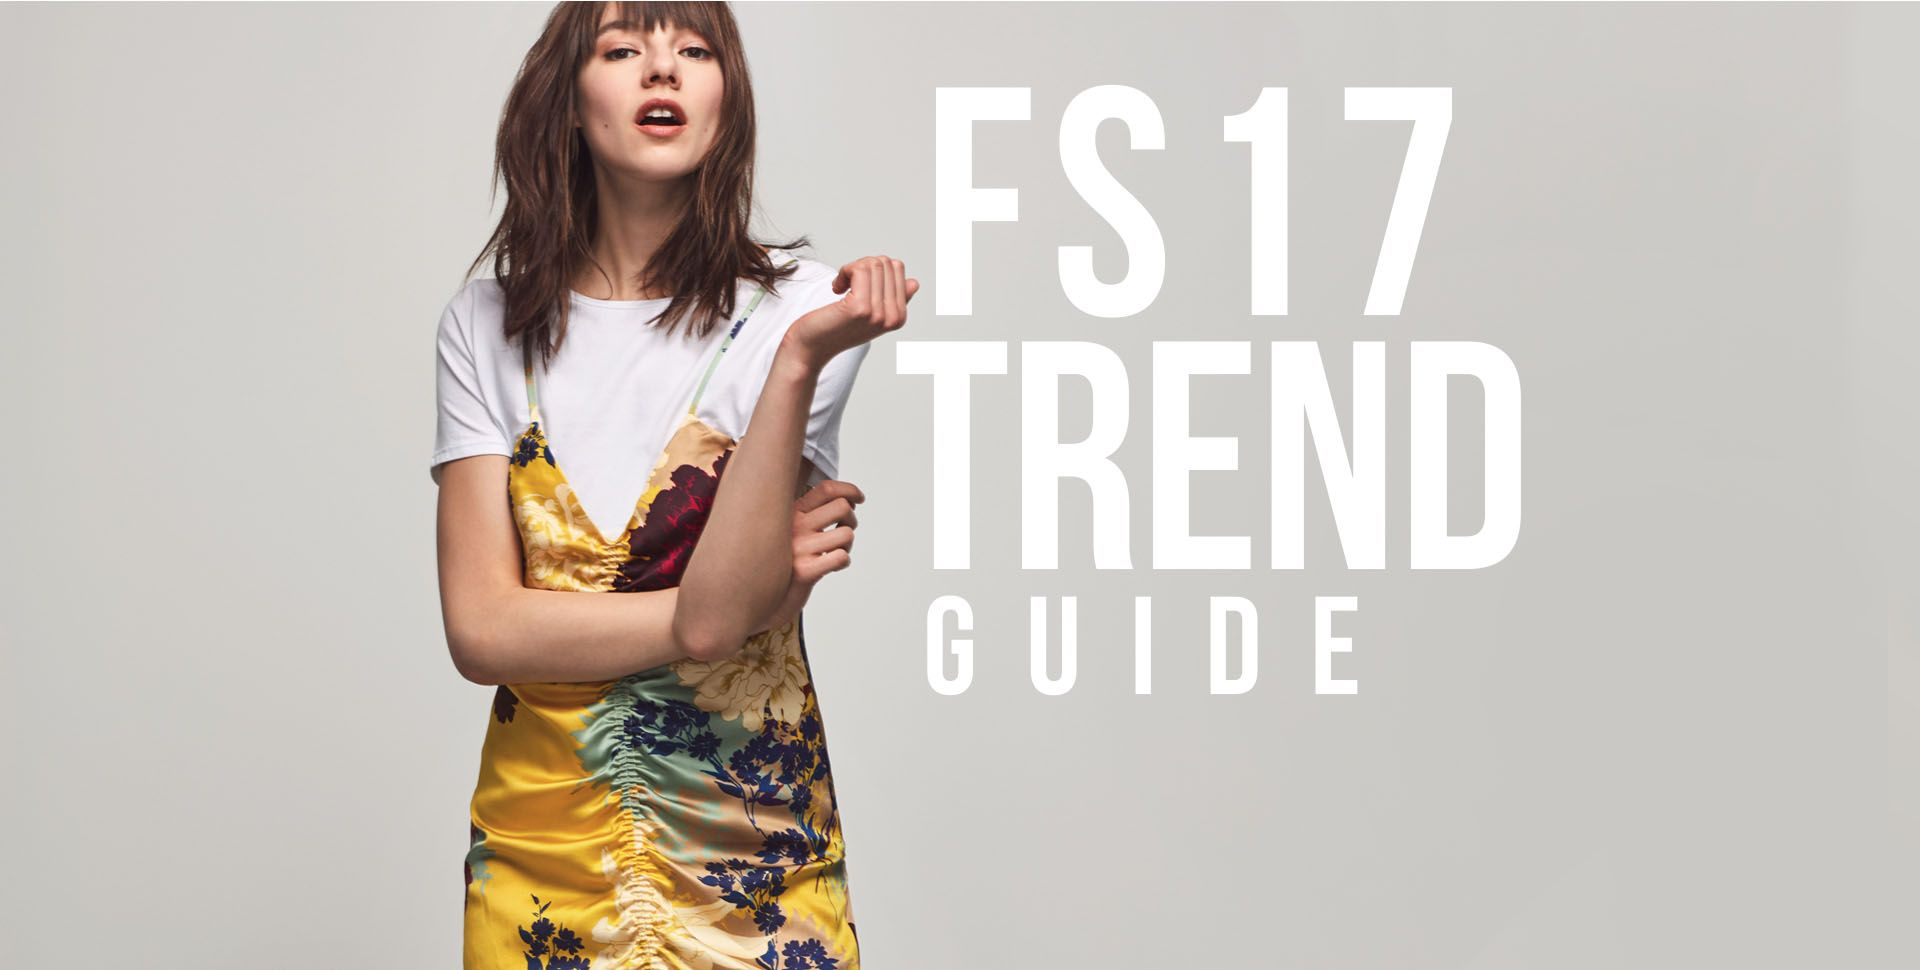 New Look Trend Guide 2017